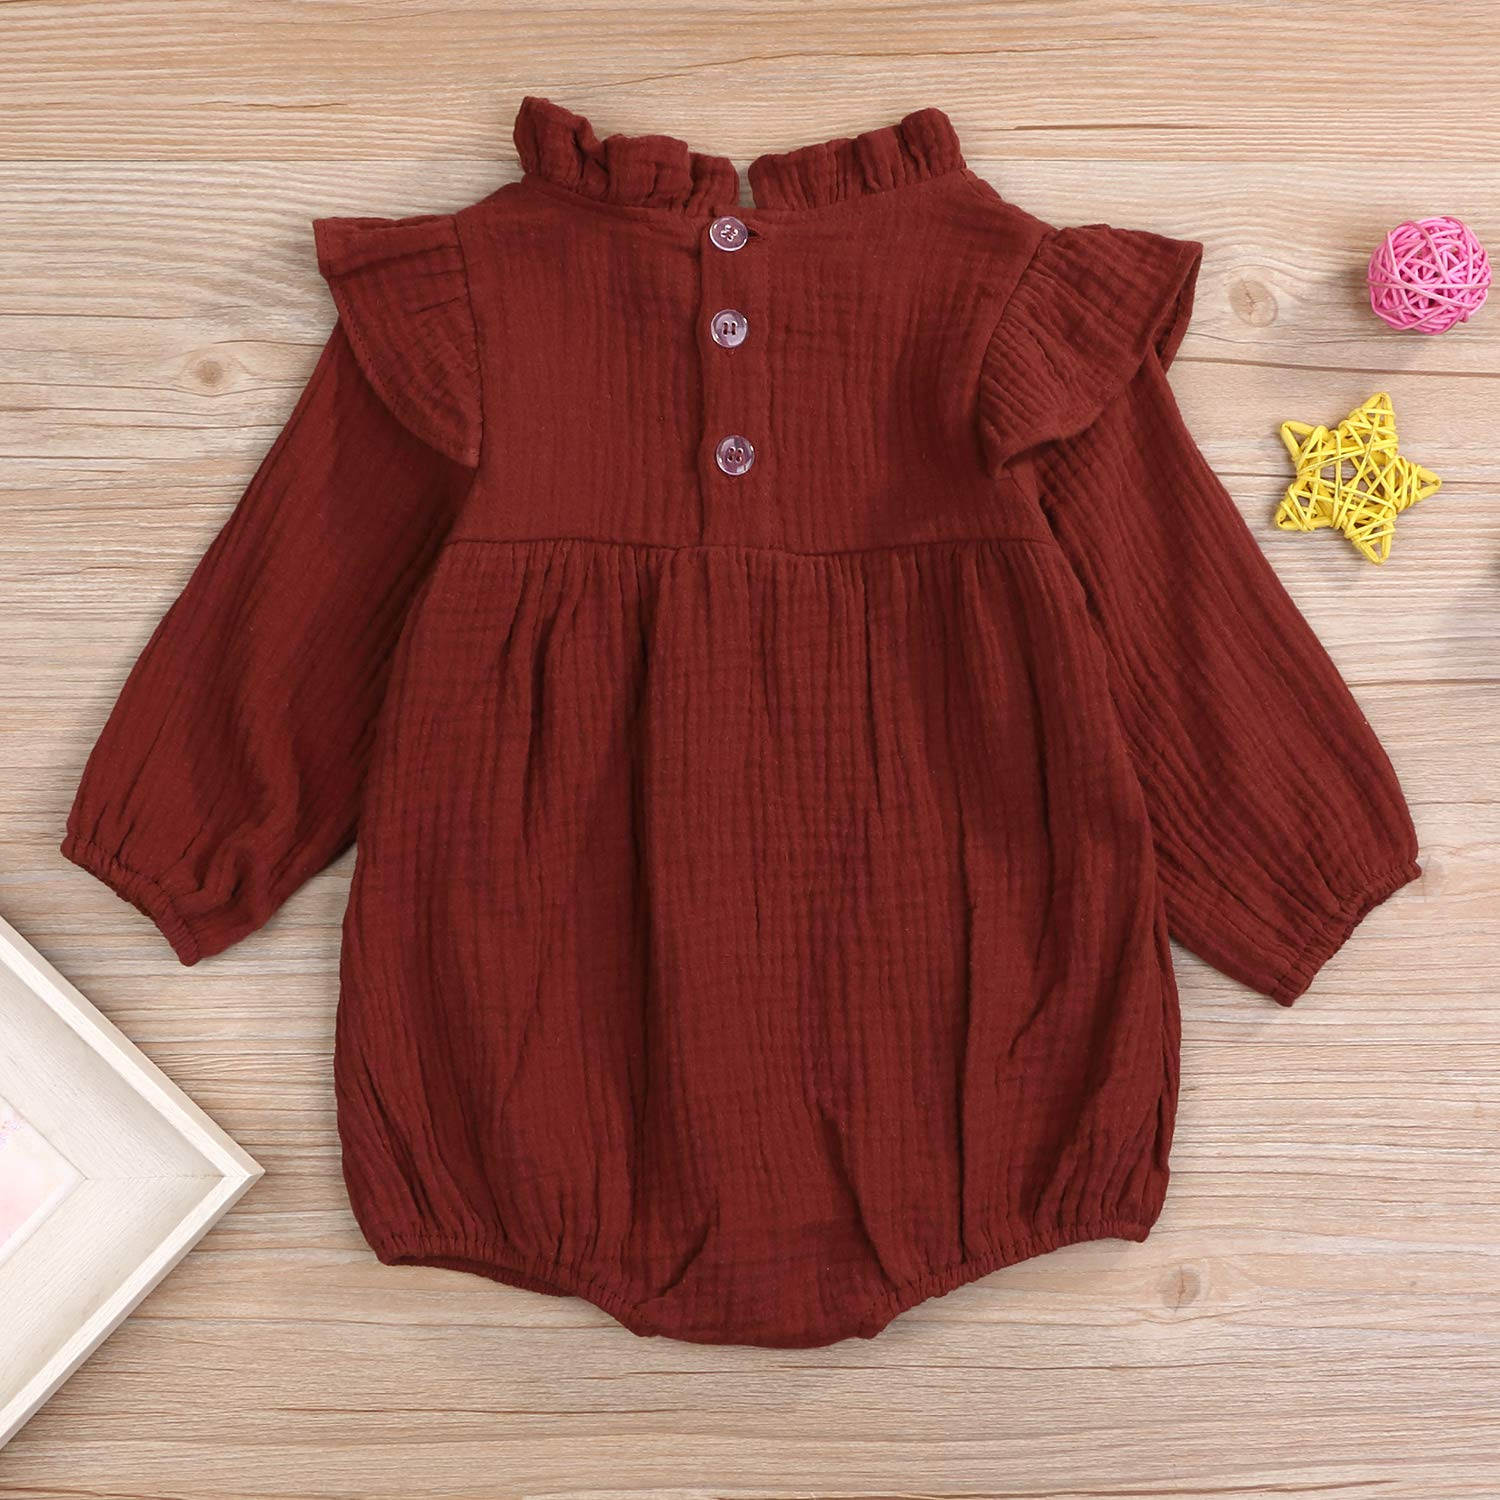 YOUNGER TREE Toddler Baby Summer Clothes Girl Ruffled Collar Sleeveless Romper Jumpsuit Clothes